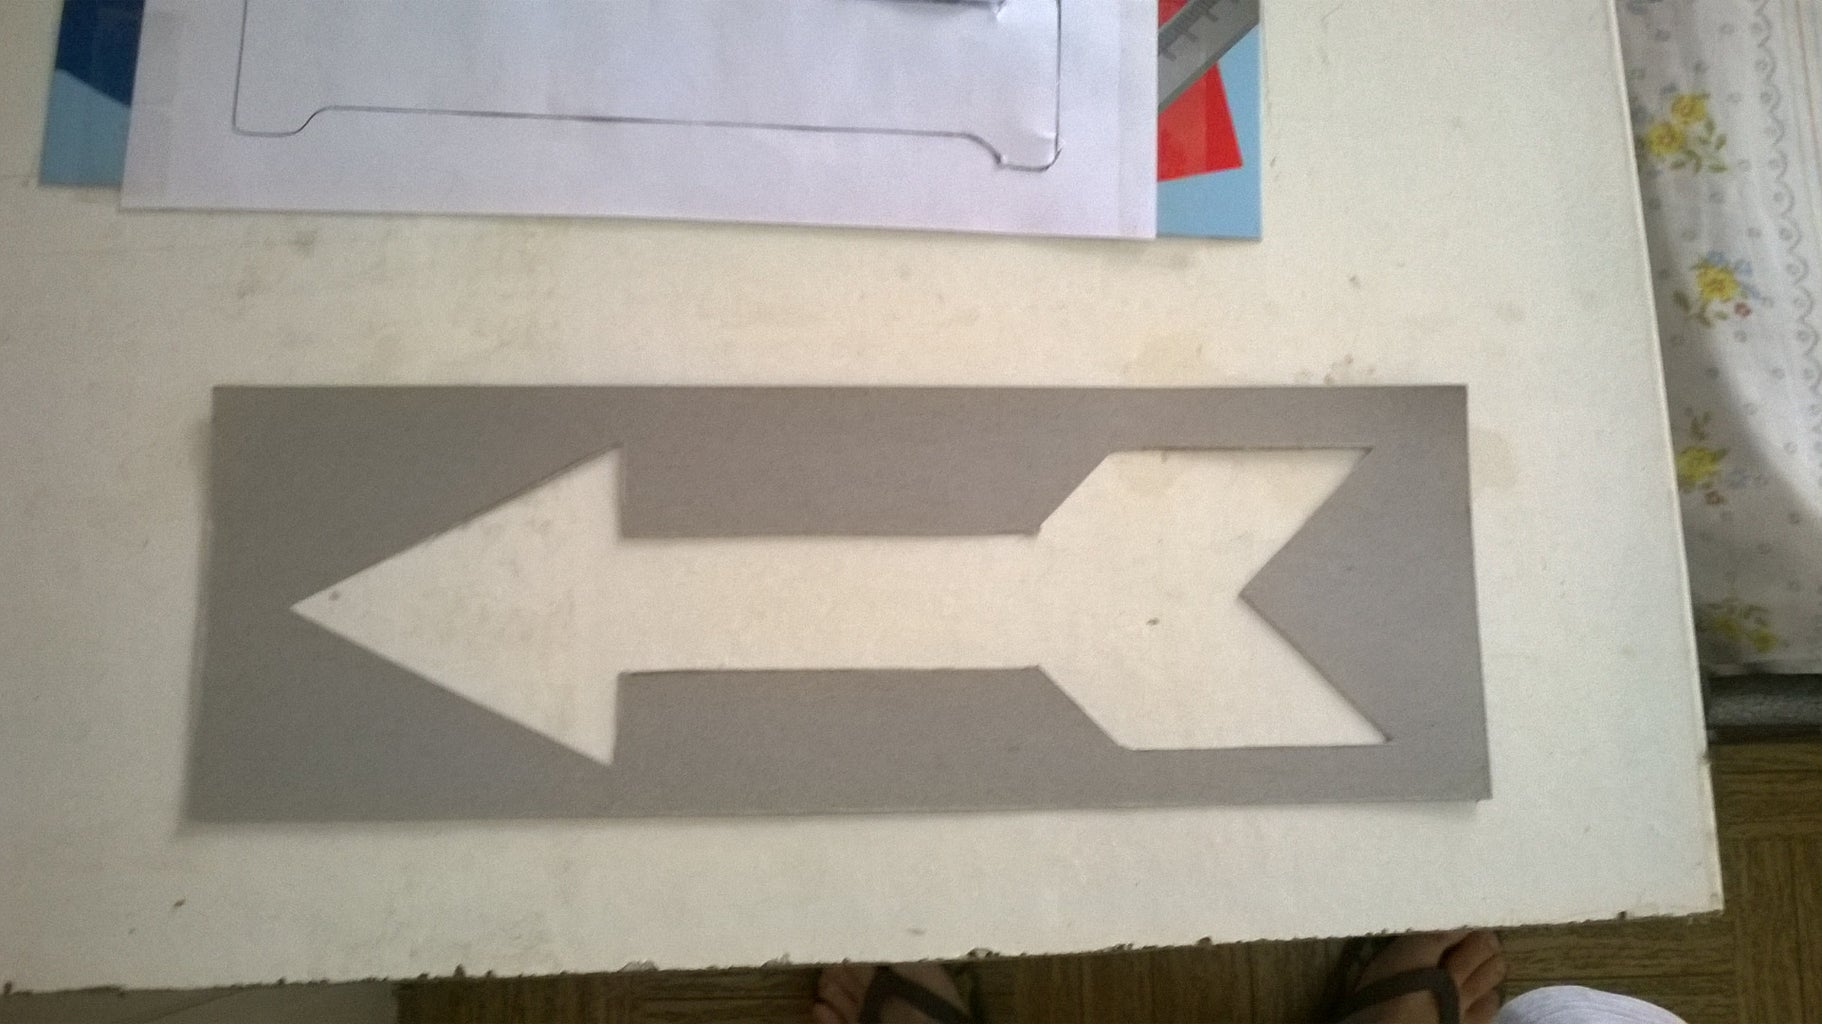 Finding a Quote to Paint on the Pallet and Cutting the Words